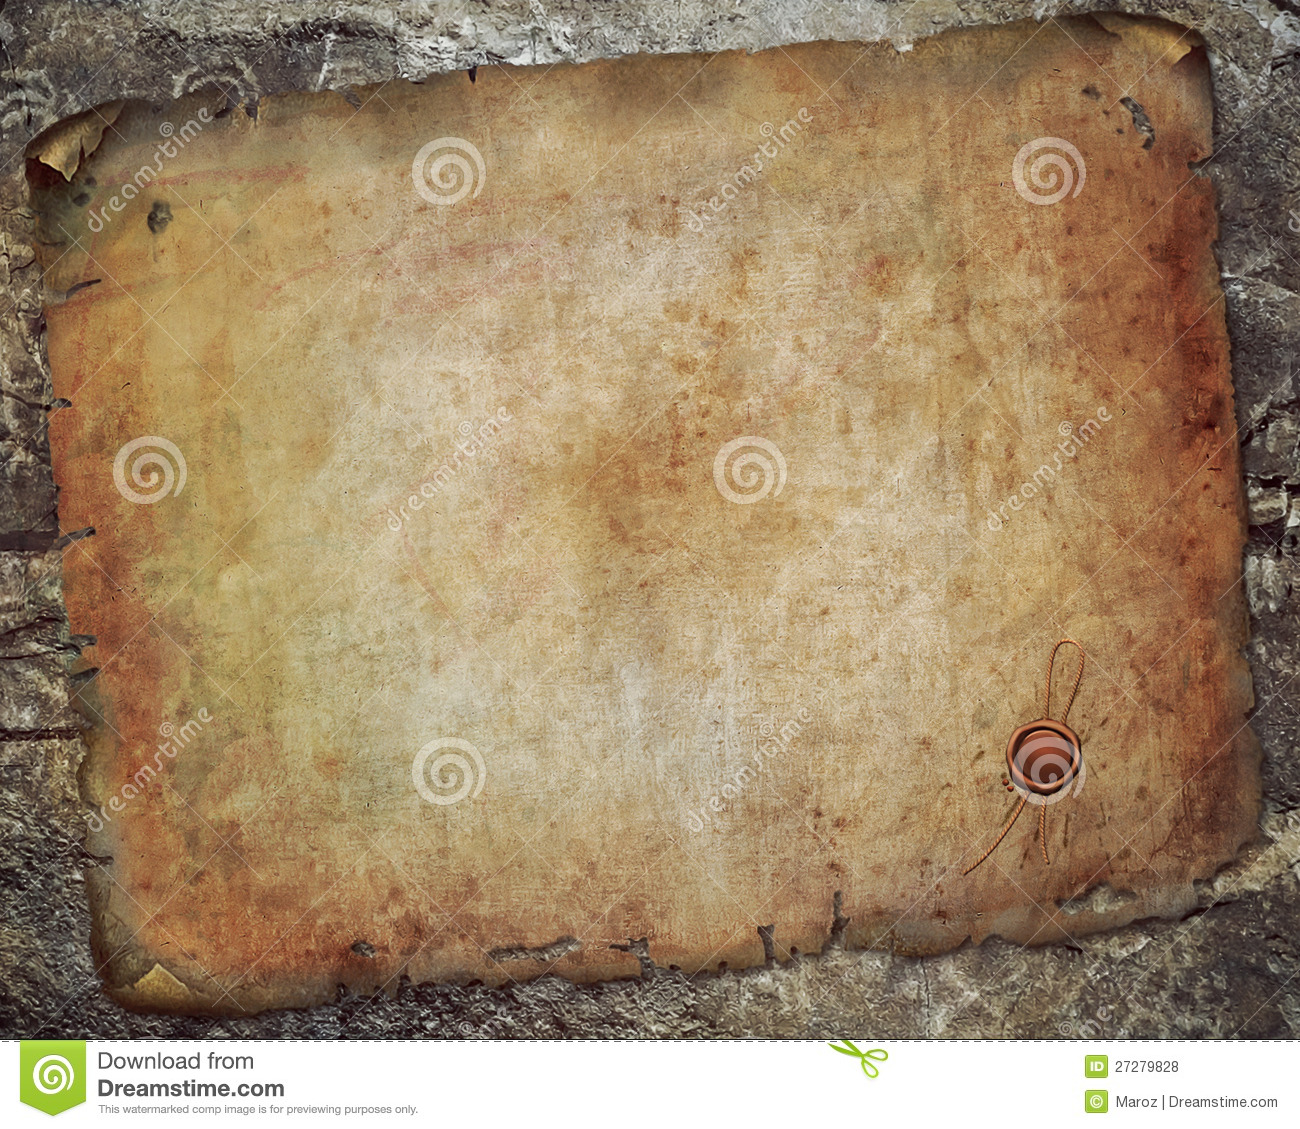 Antique Scroll Paper: Antique Paper Scroll On The Wall Royalty Free Stock Photos